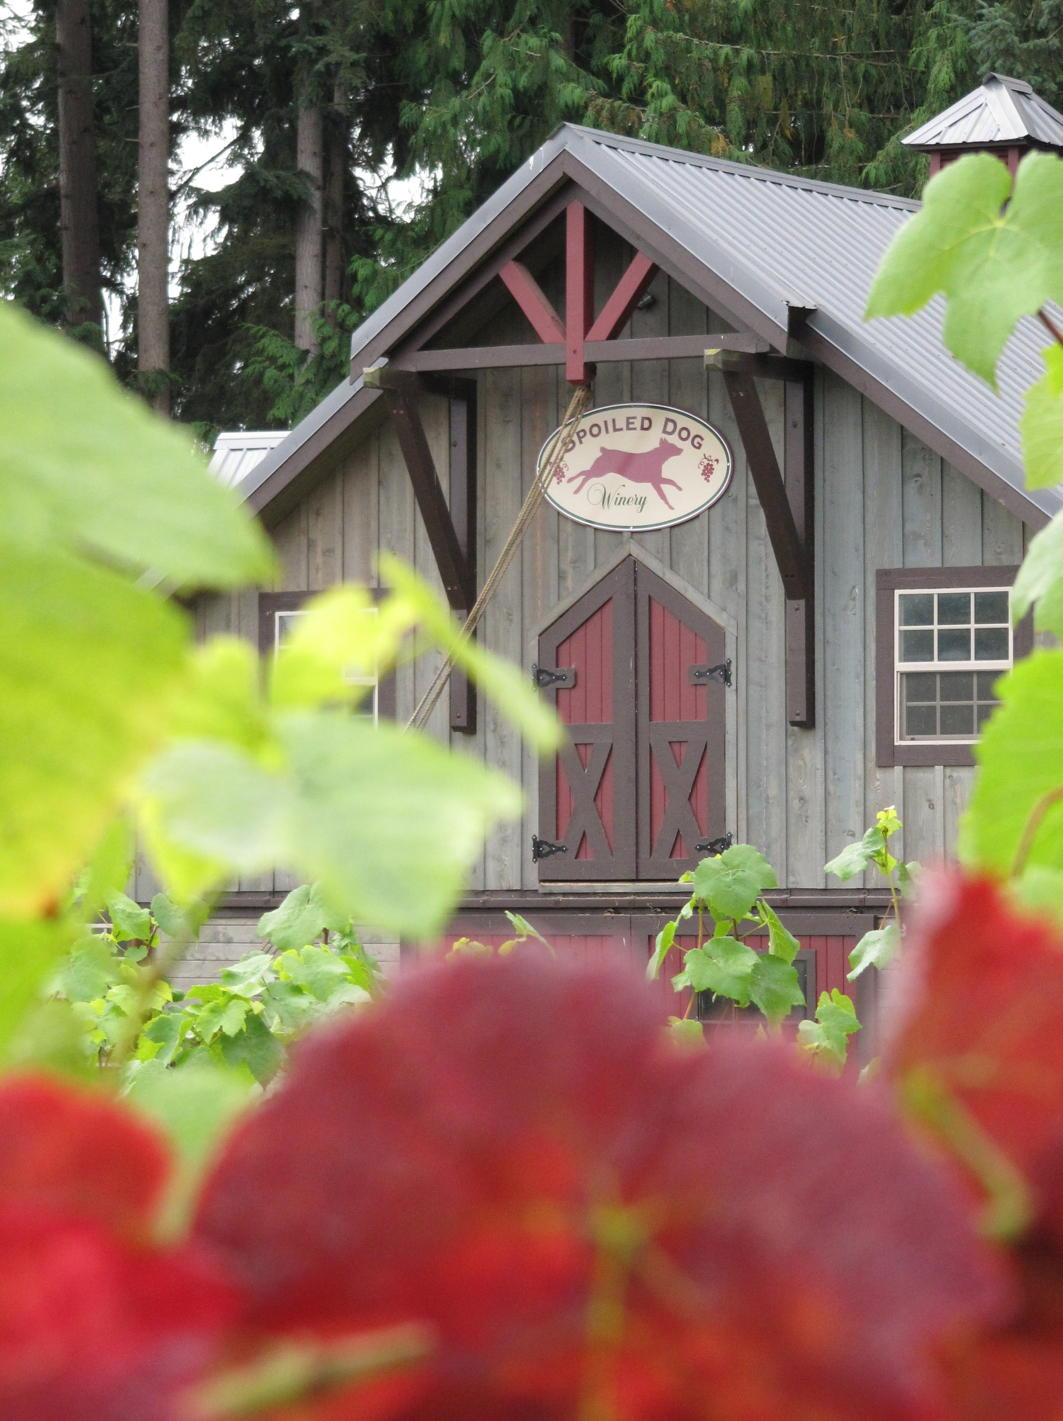 Spoiled Dog Winery Tasting Room near Langley, Washington on Whidbey Island located in the Puget Sound